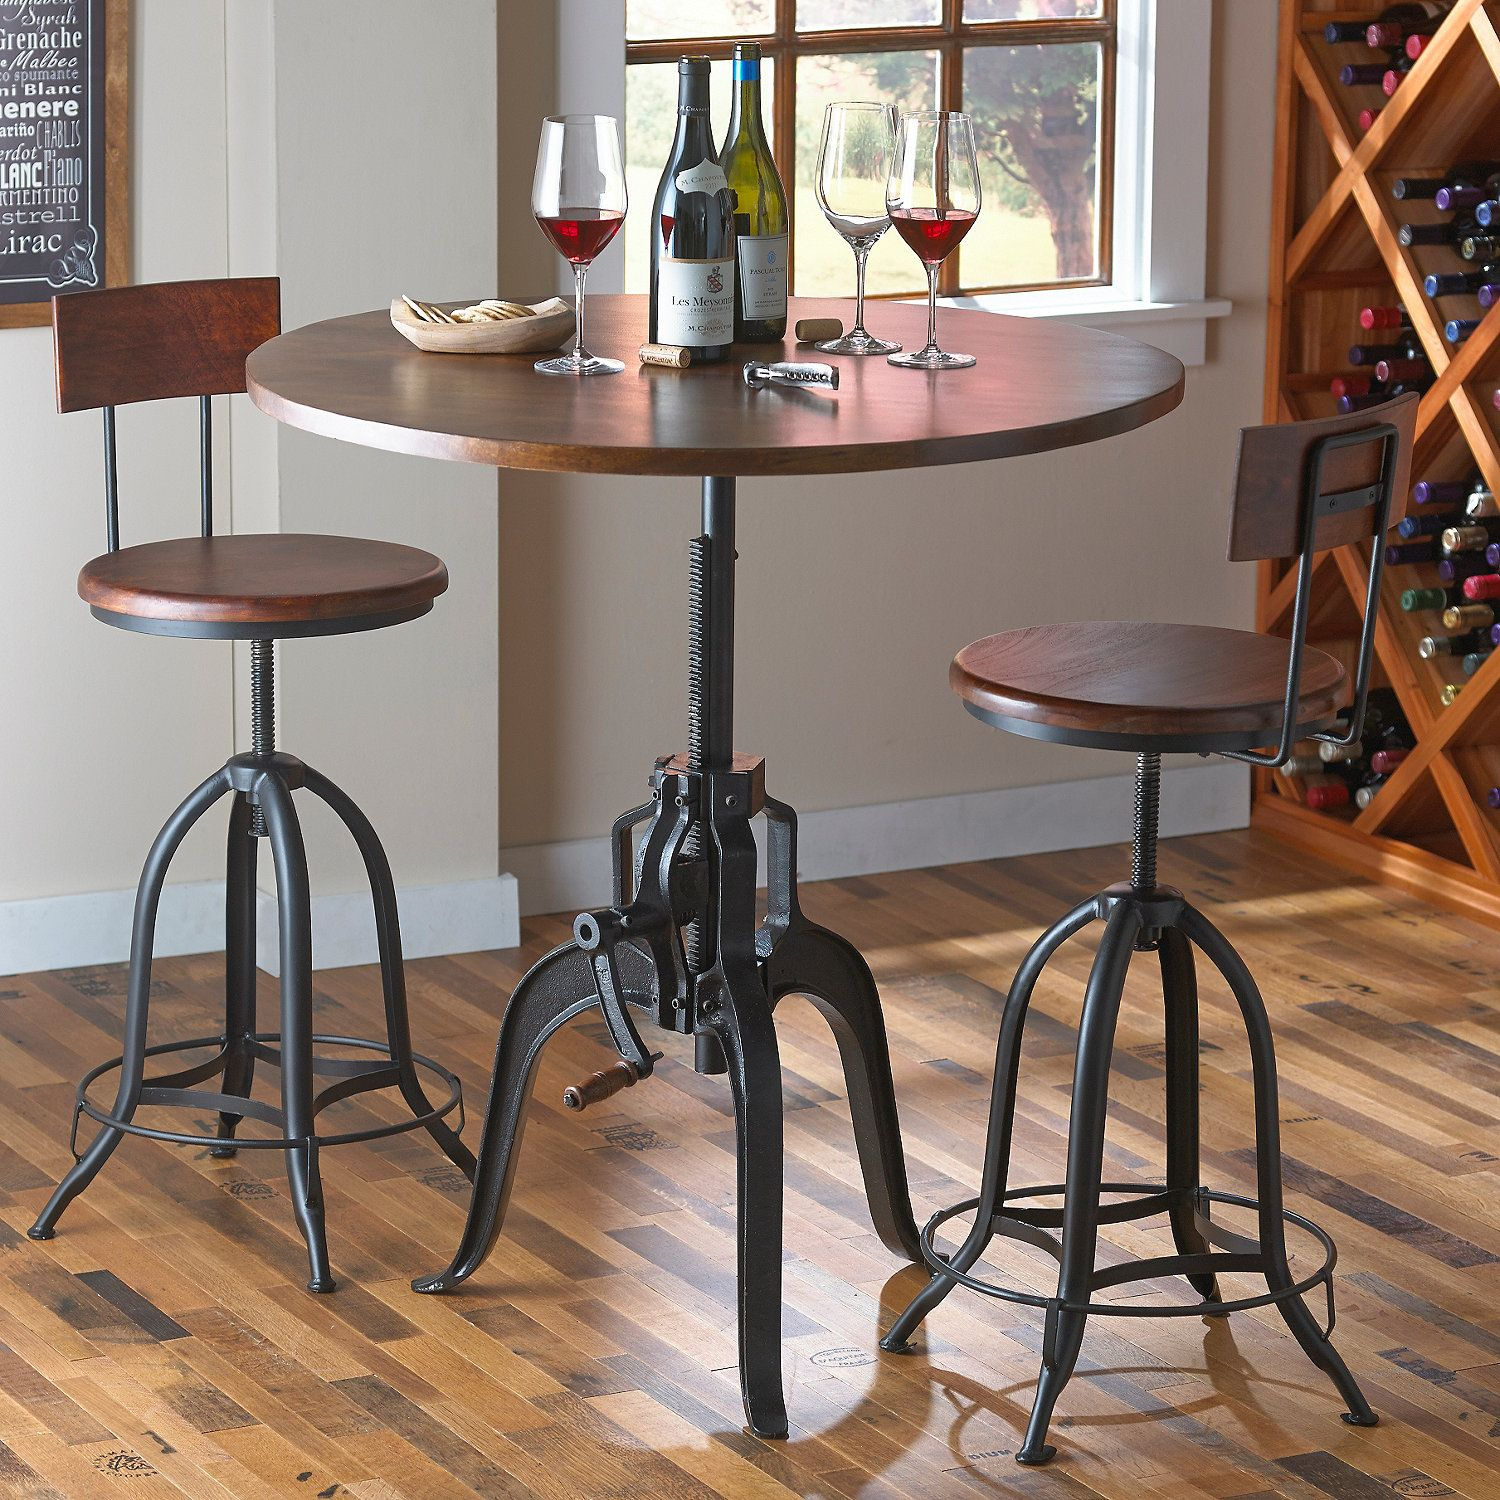 Industrial Crank Pub Table and Two Stools & Industrial Crank Pub Table and Two Stools | Industrial Dining ... islam-shia.org